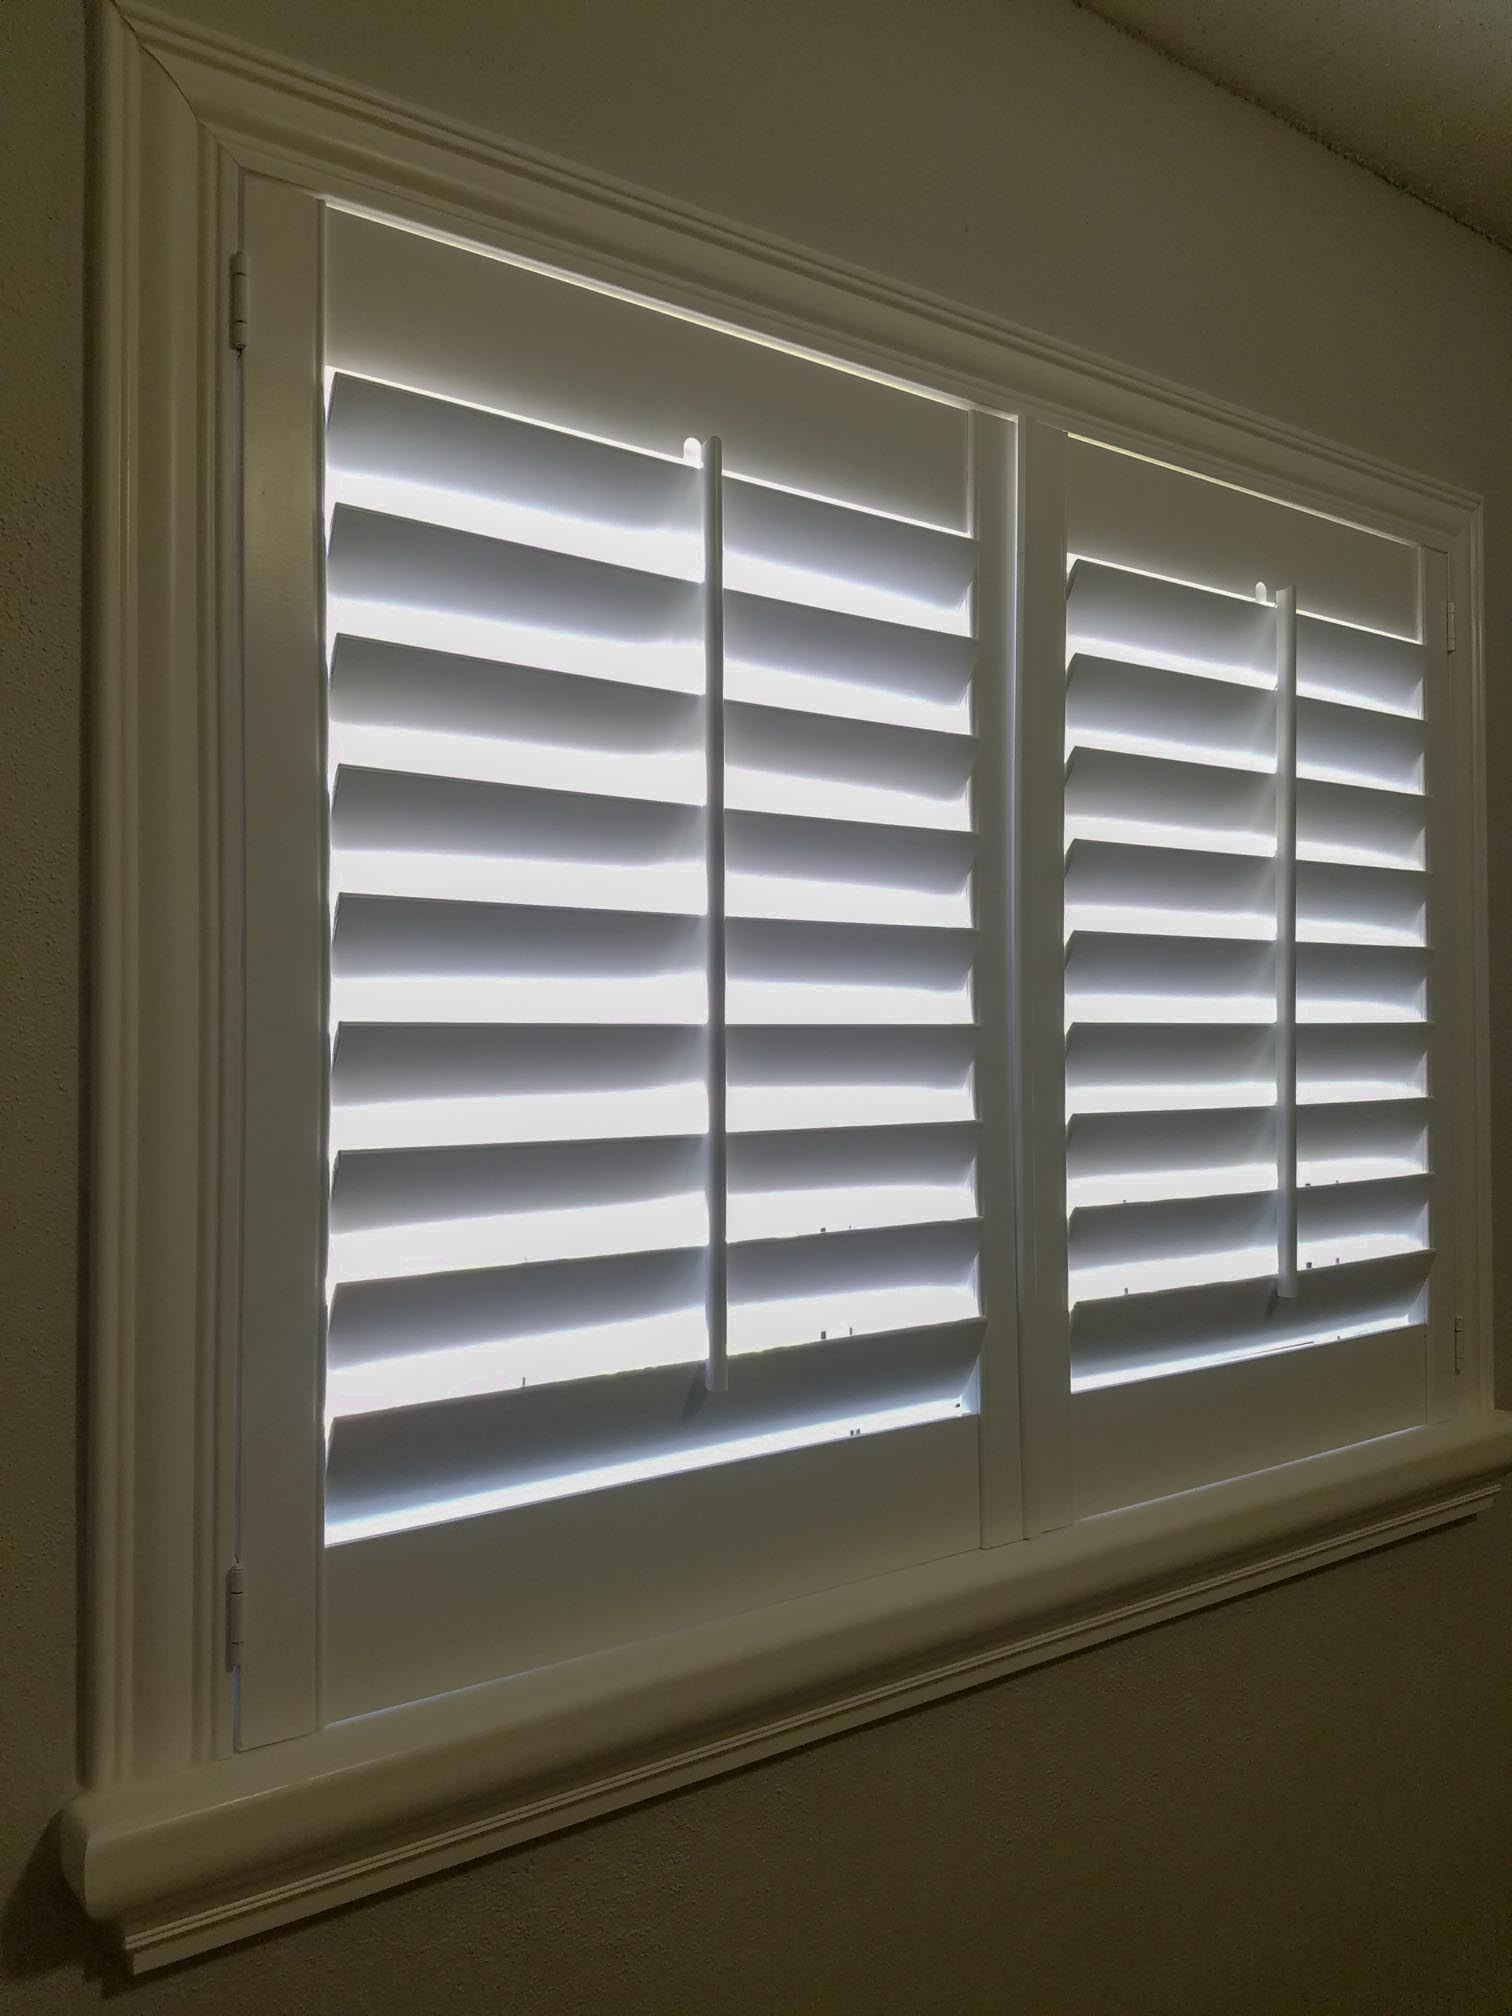 plantation shutters gallery PLANTATION SHUTTERS GALLERY 20170821 173349